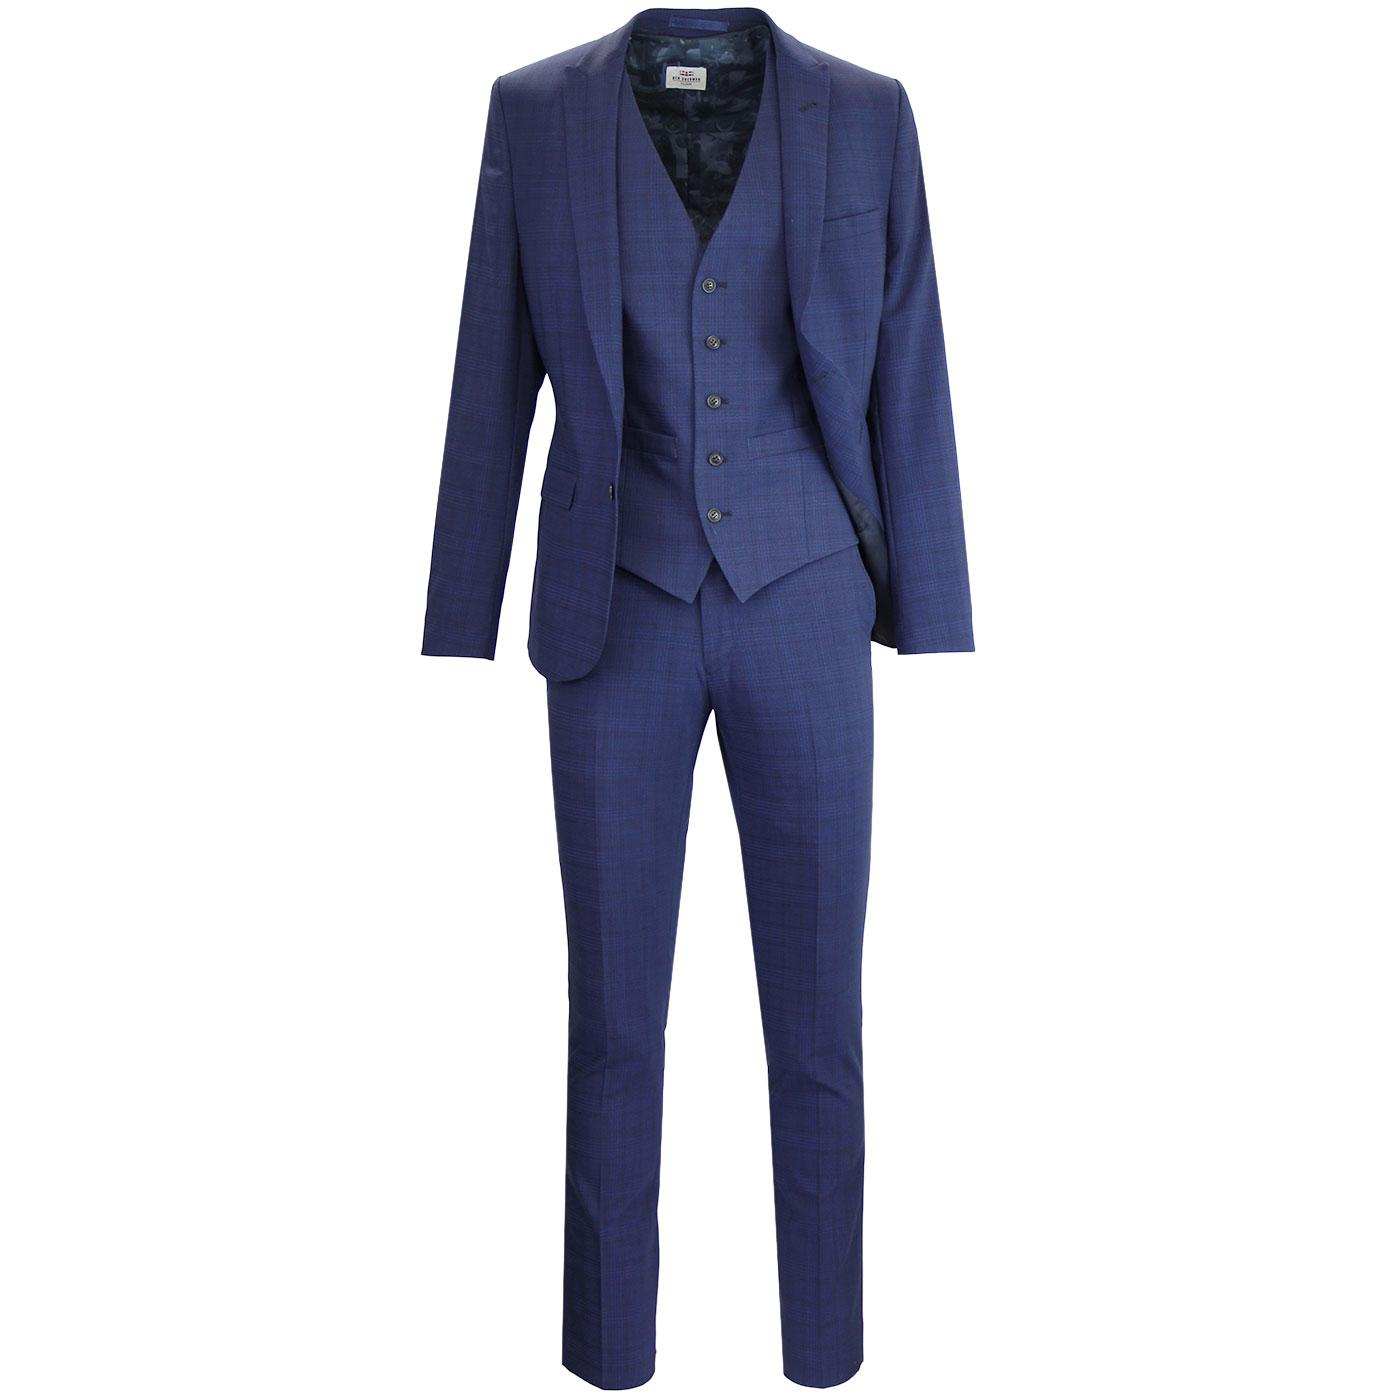 BEN SHERMAN Prince of Wales Mod Suit in Blue